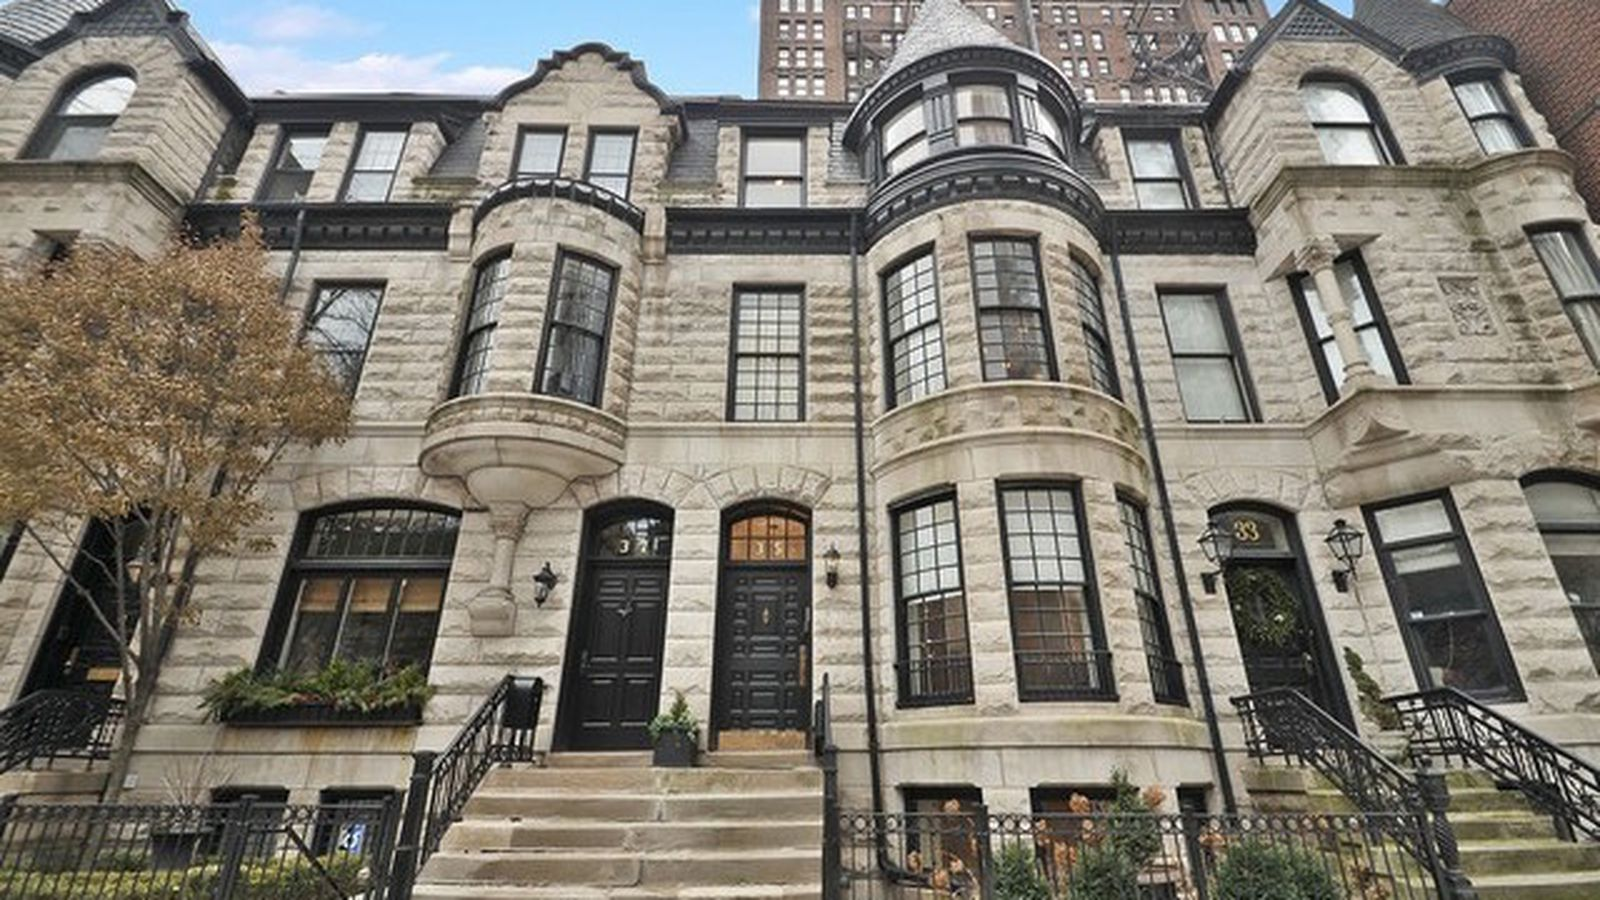 Gold coast row home built by potter palmer asks 2 5m for Chicago mansion for sale